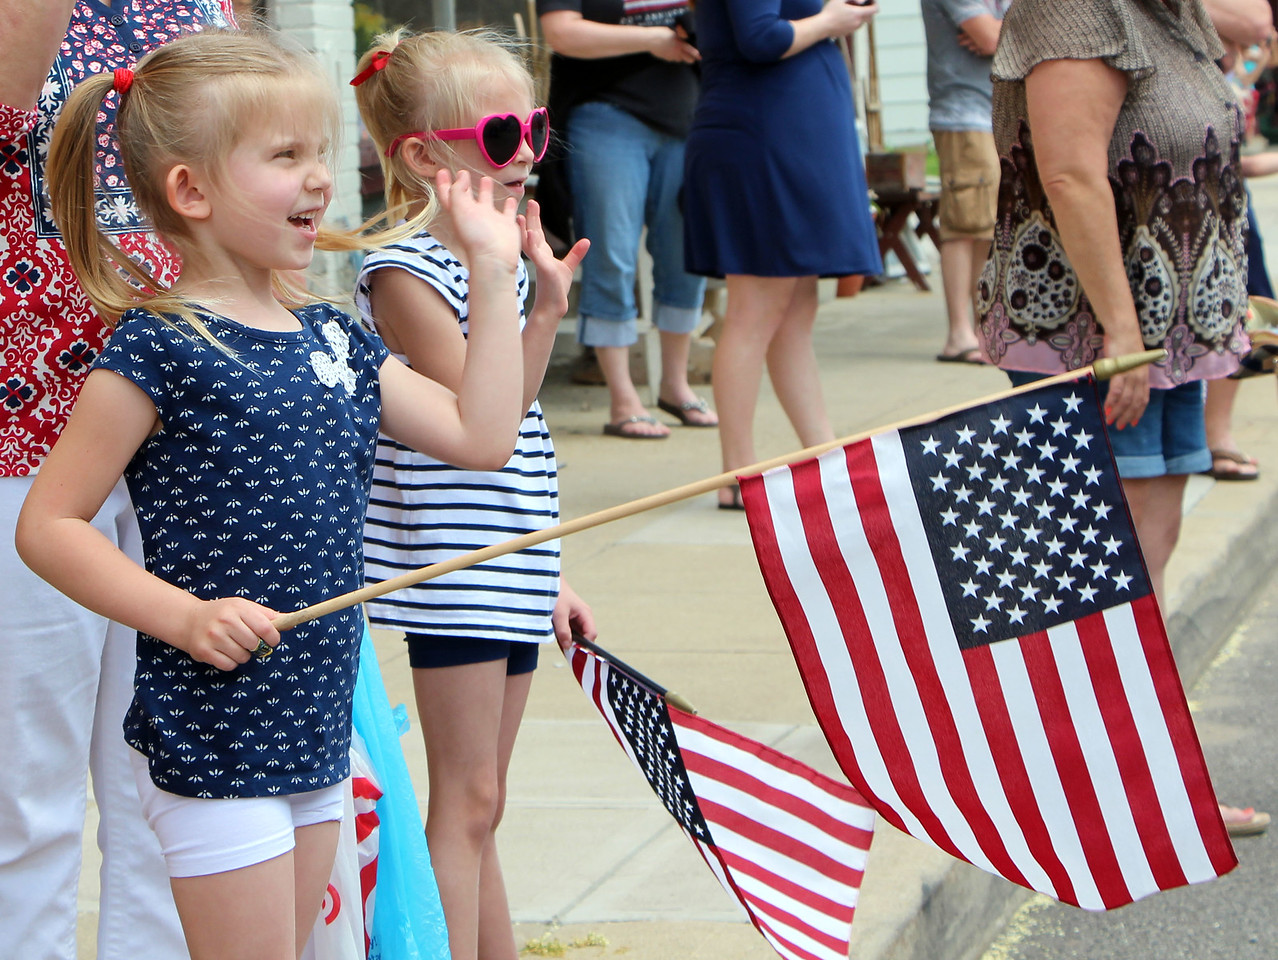 HALEE HEIRONIMUS / GAZETTE Sisters Harlow, 5, (front) and Finley Johnson, 7, (back) of Seville waved as the parade went down Main Street in Seville on Monday afternoon.